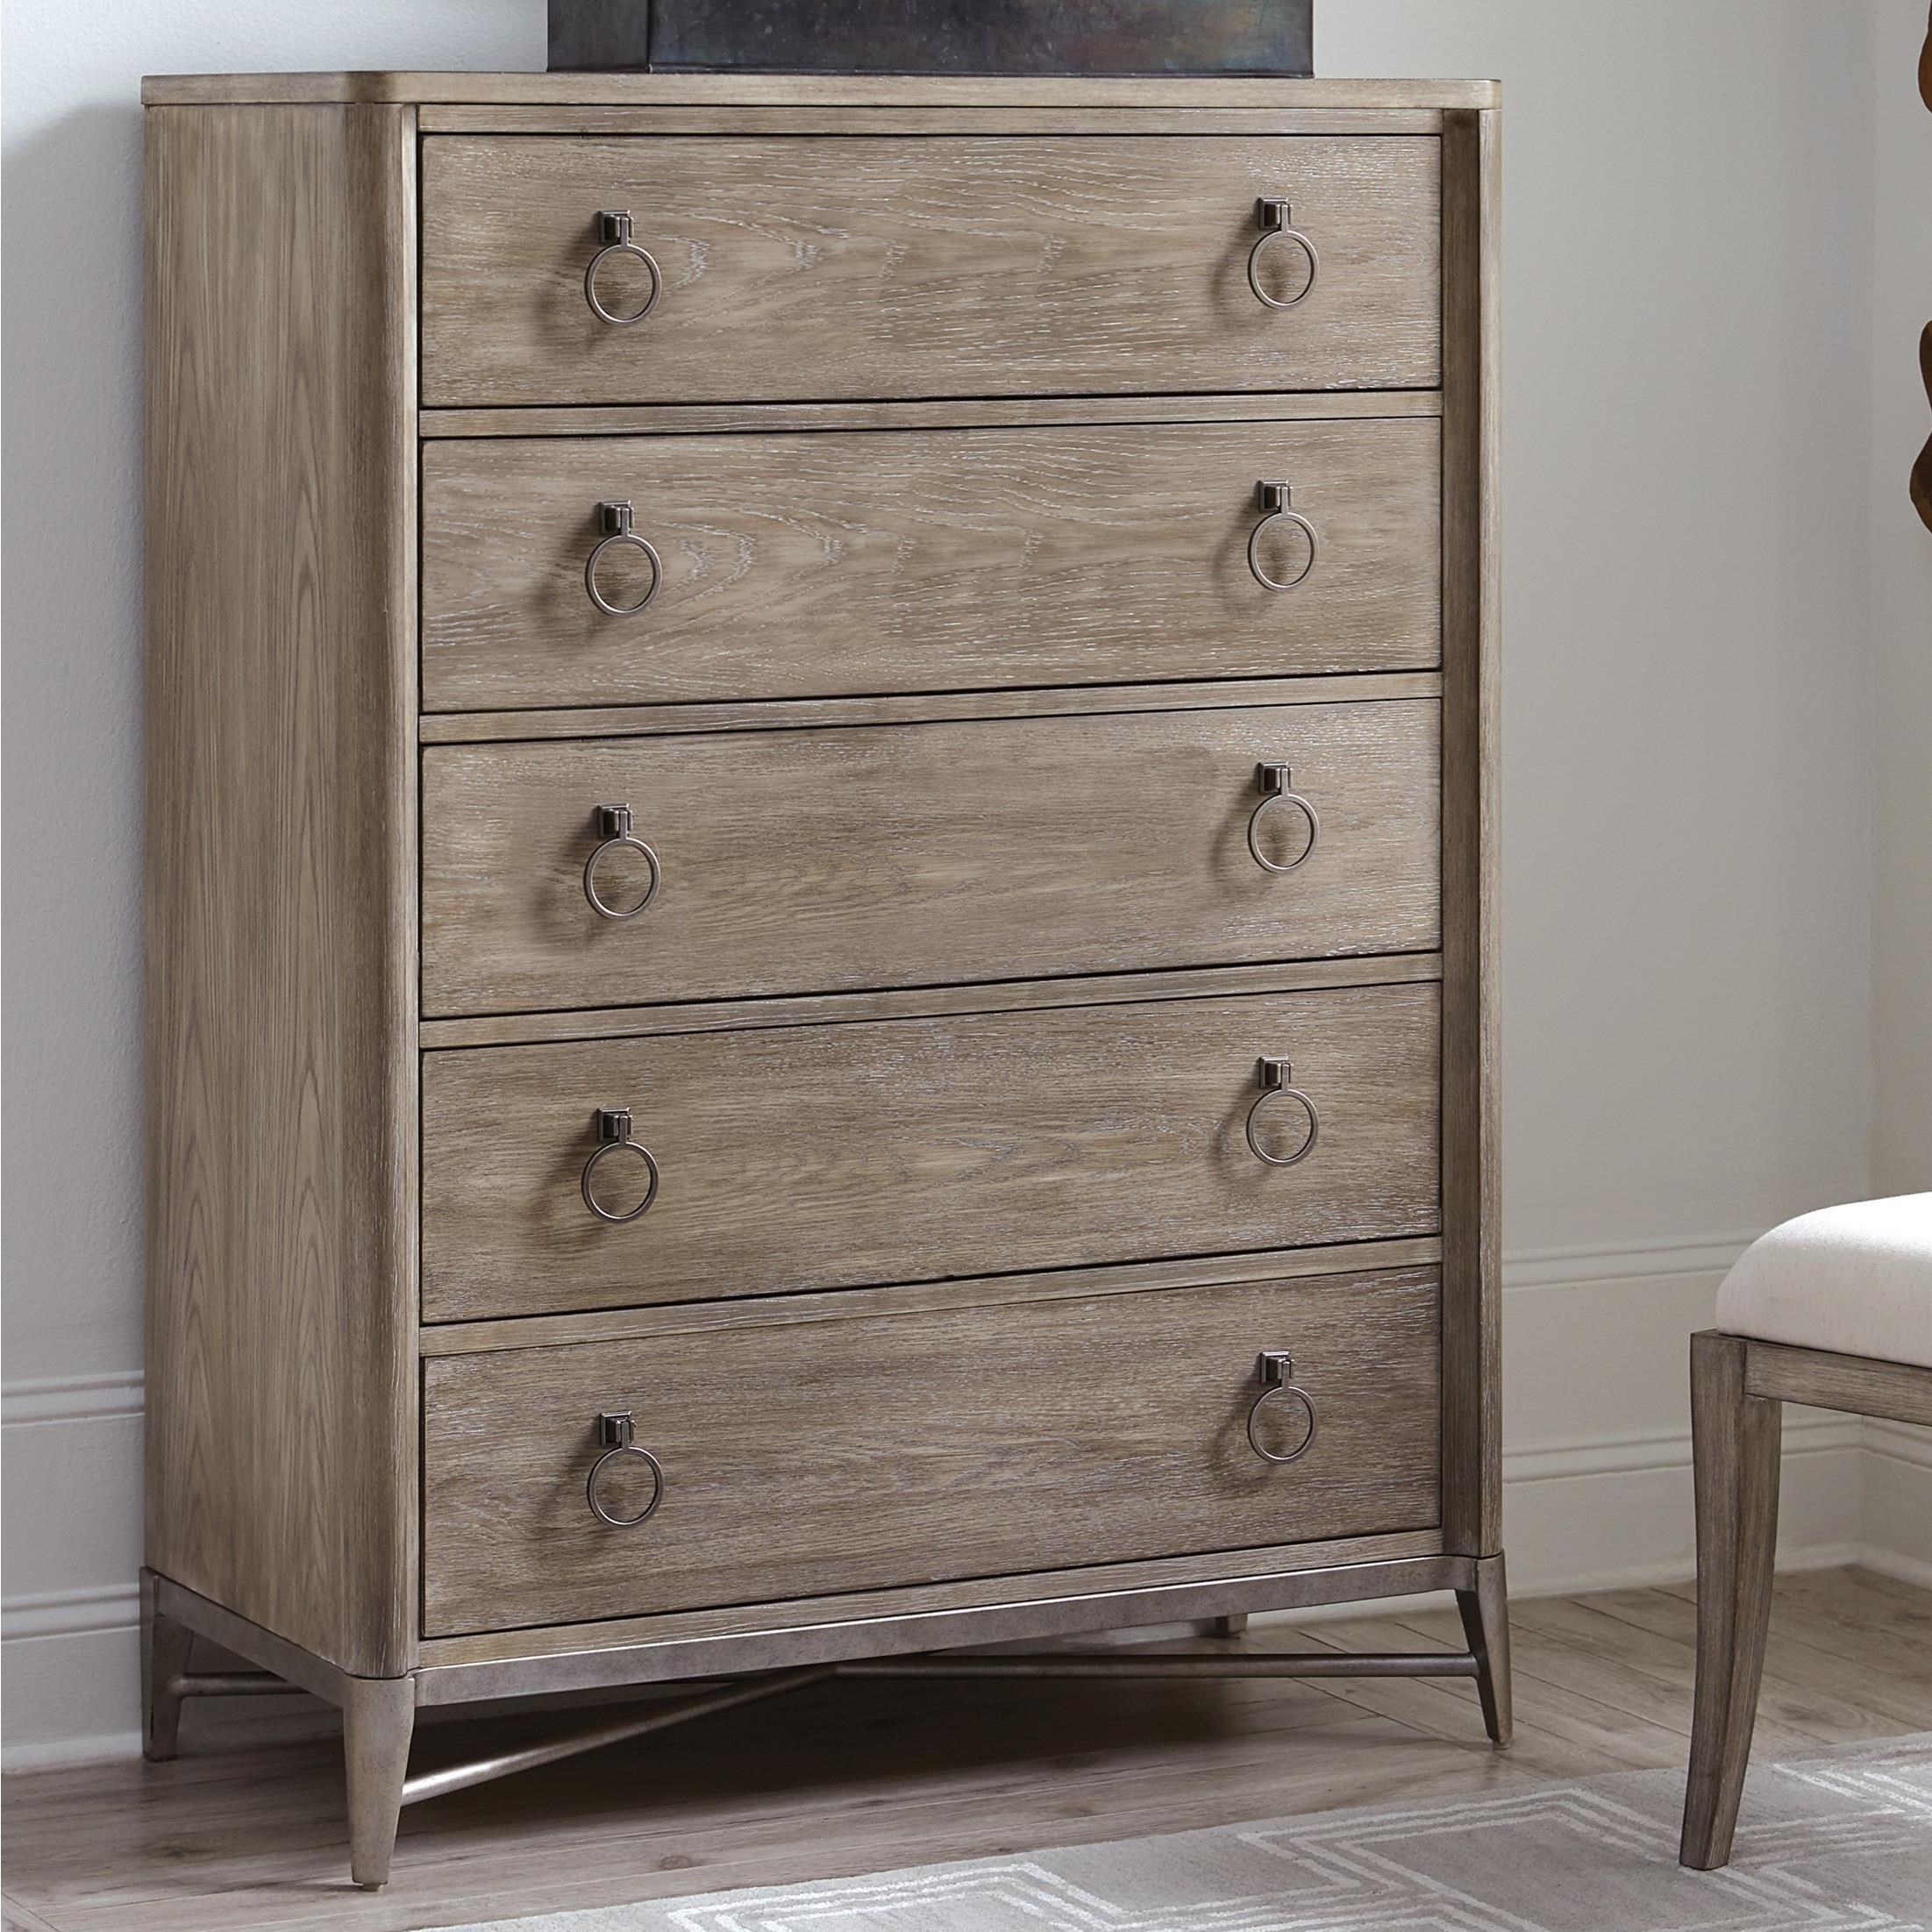 Stephanie Stephanie 5 Drawer Chest by Riverside Furniture at Morris Home